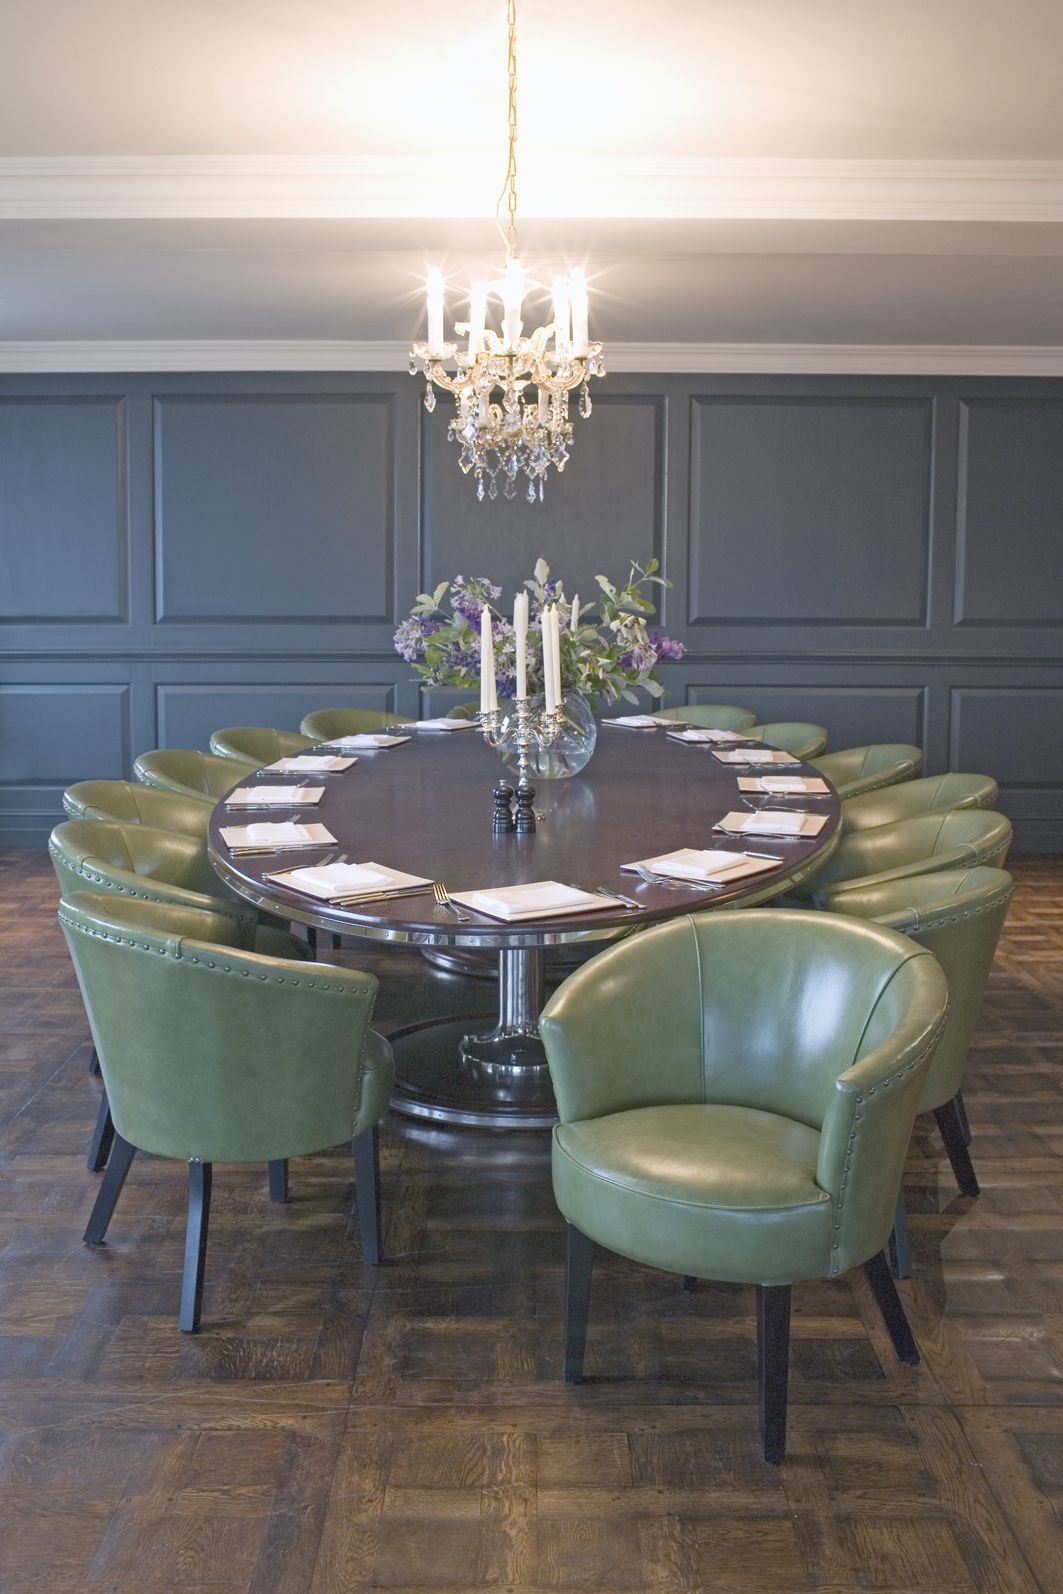 Soho House Shoreditch: Elegant Petworth Chairs @ Shoreditch House From George